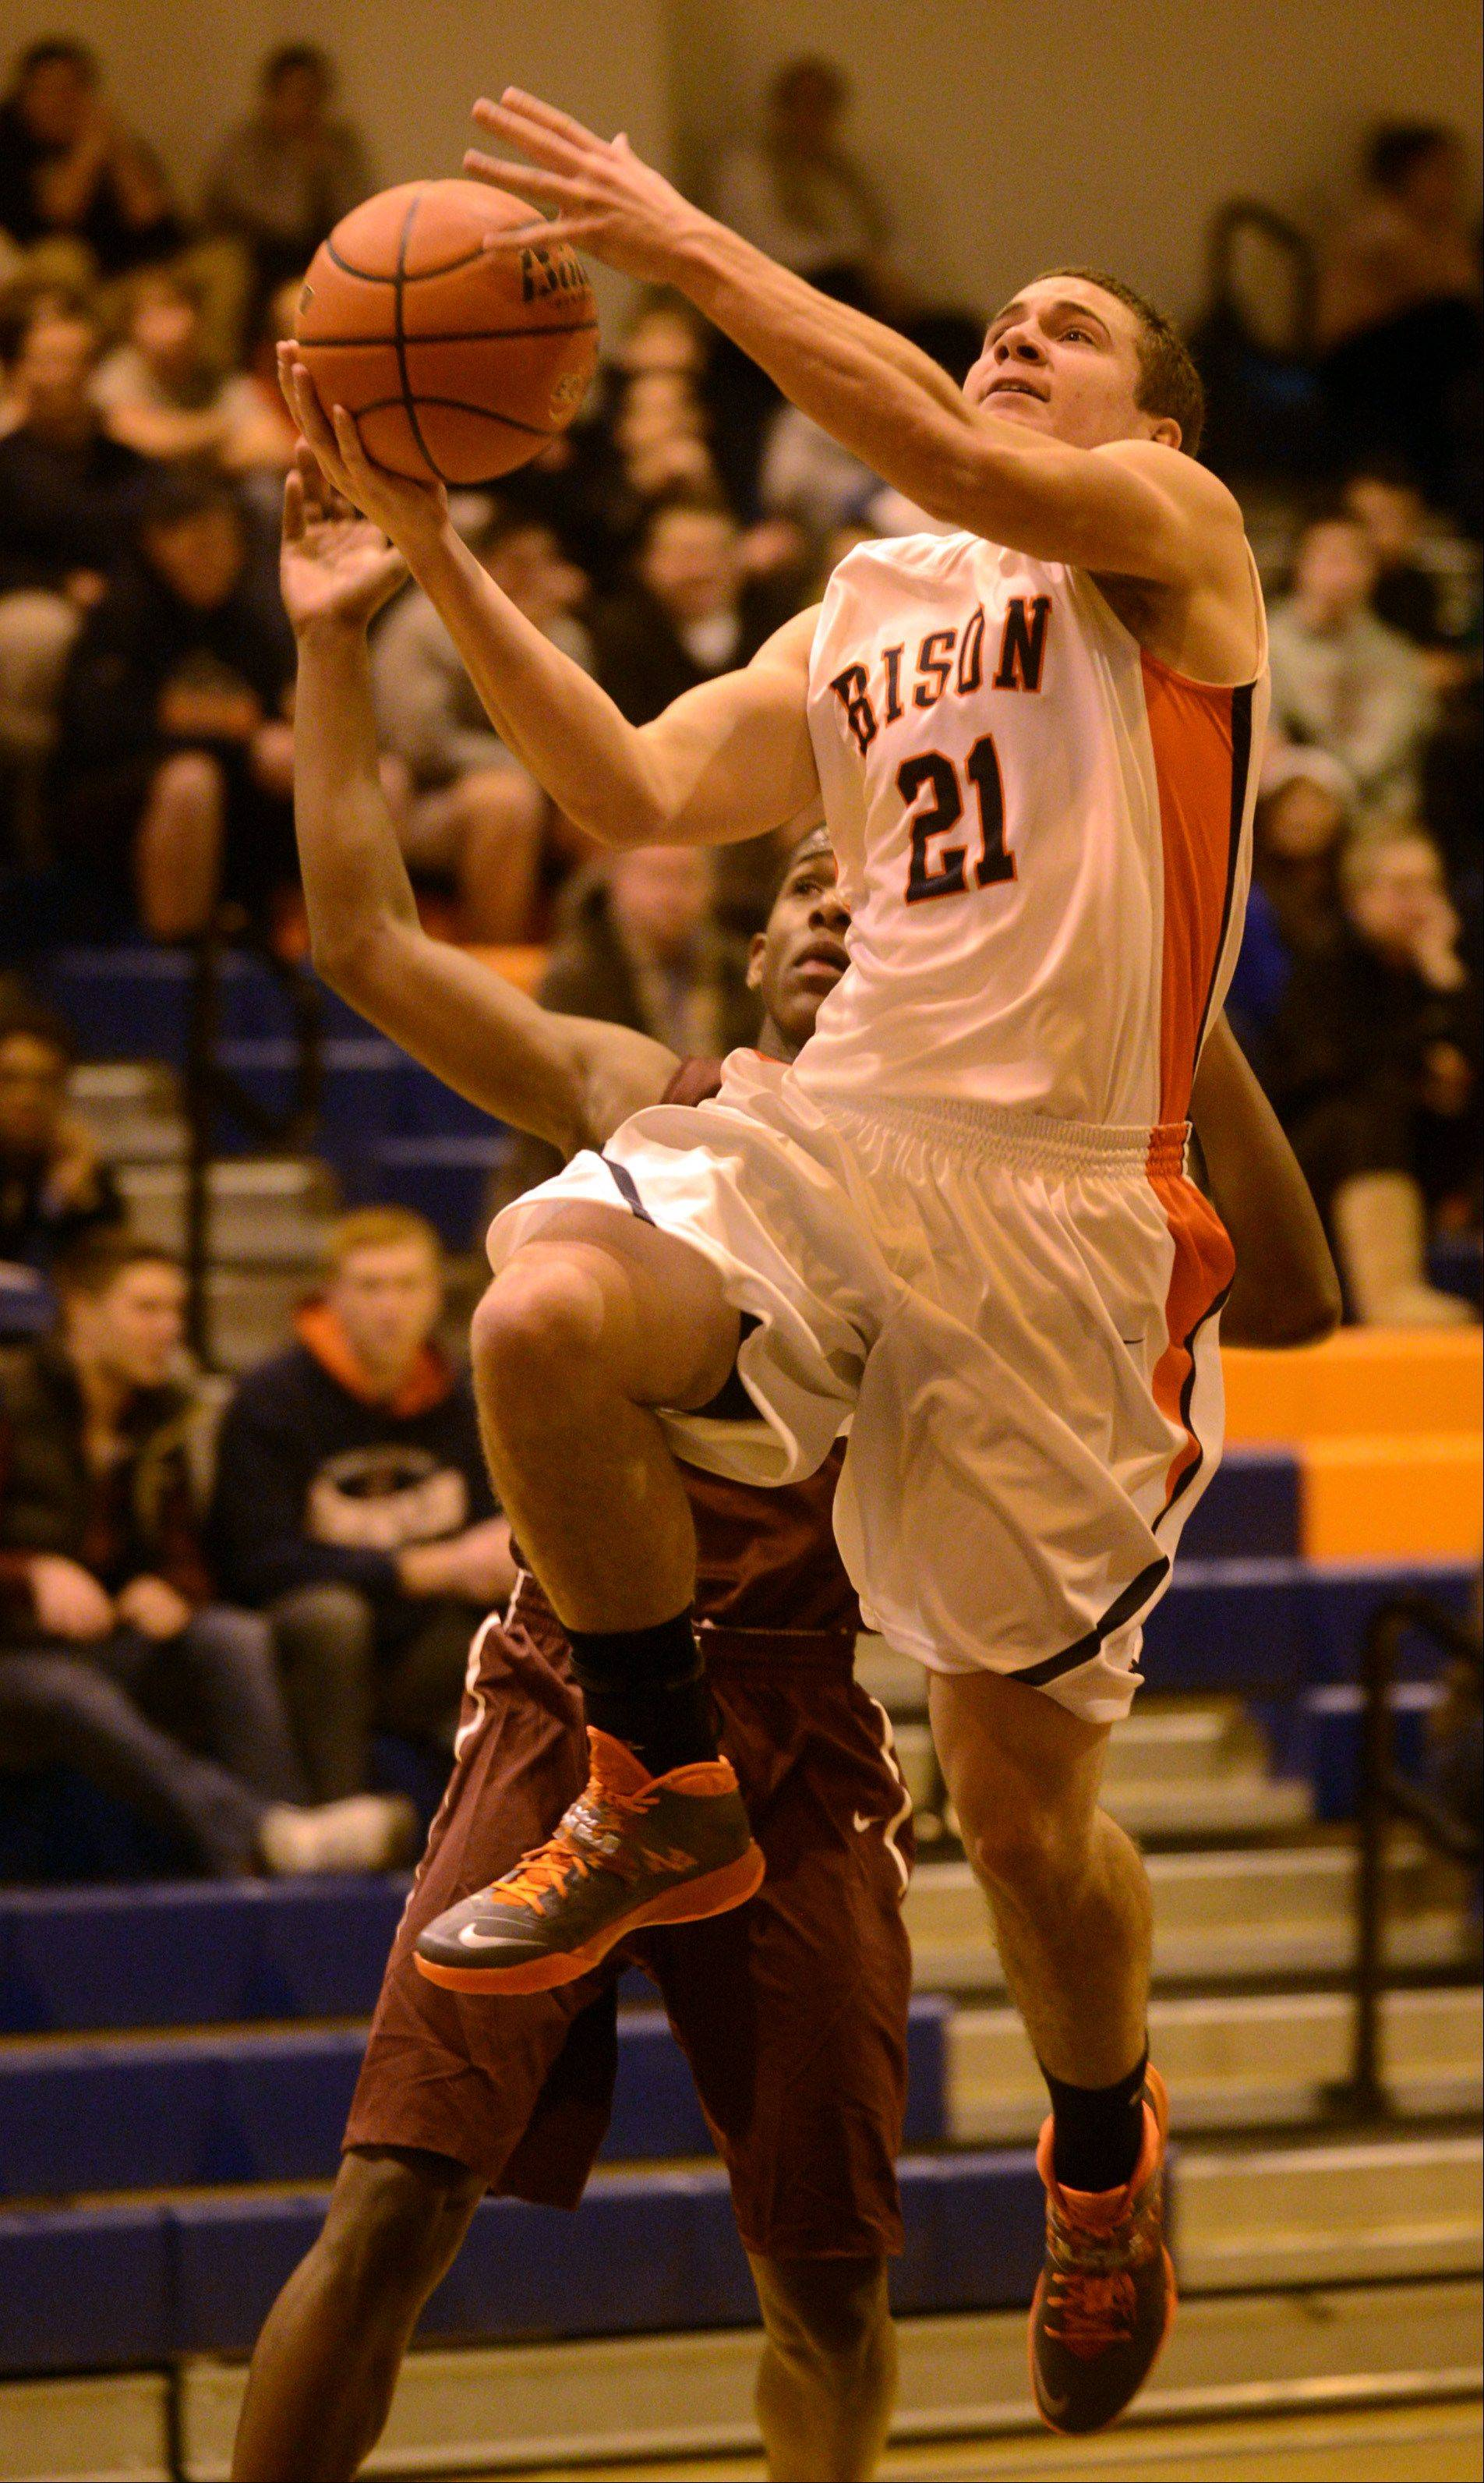 Buffalo Grove's Scott Smithern takes the ball to the hoop against Elgin at Buffalo Grove on Monday evening.